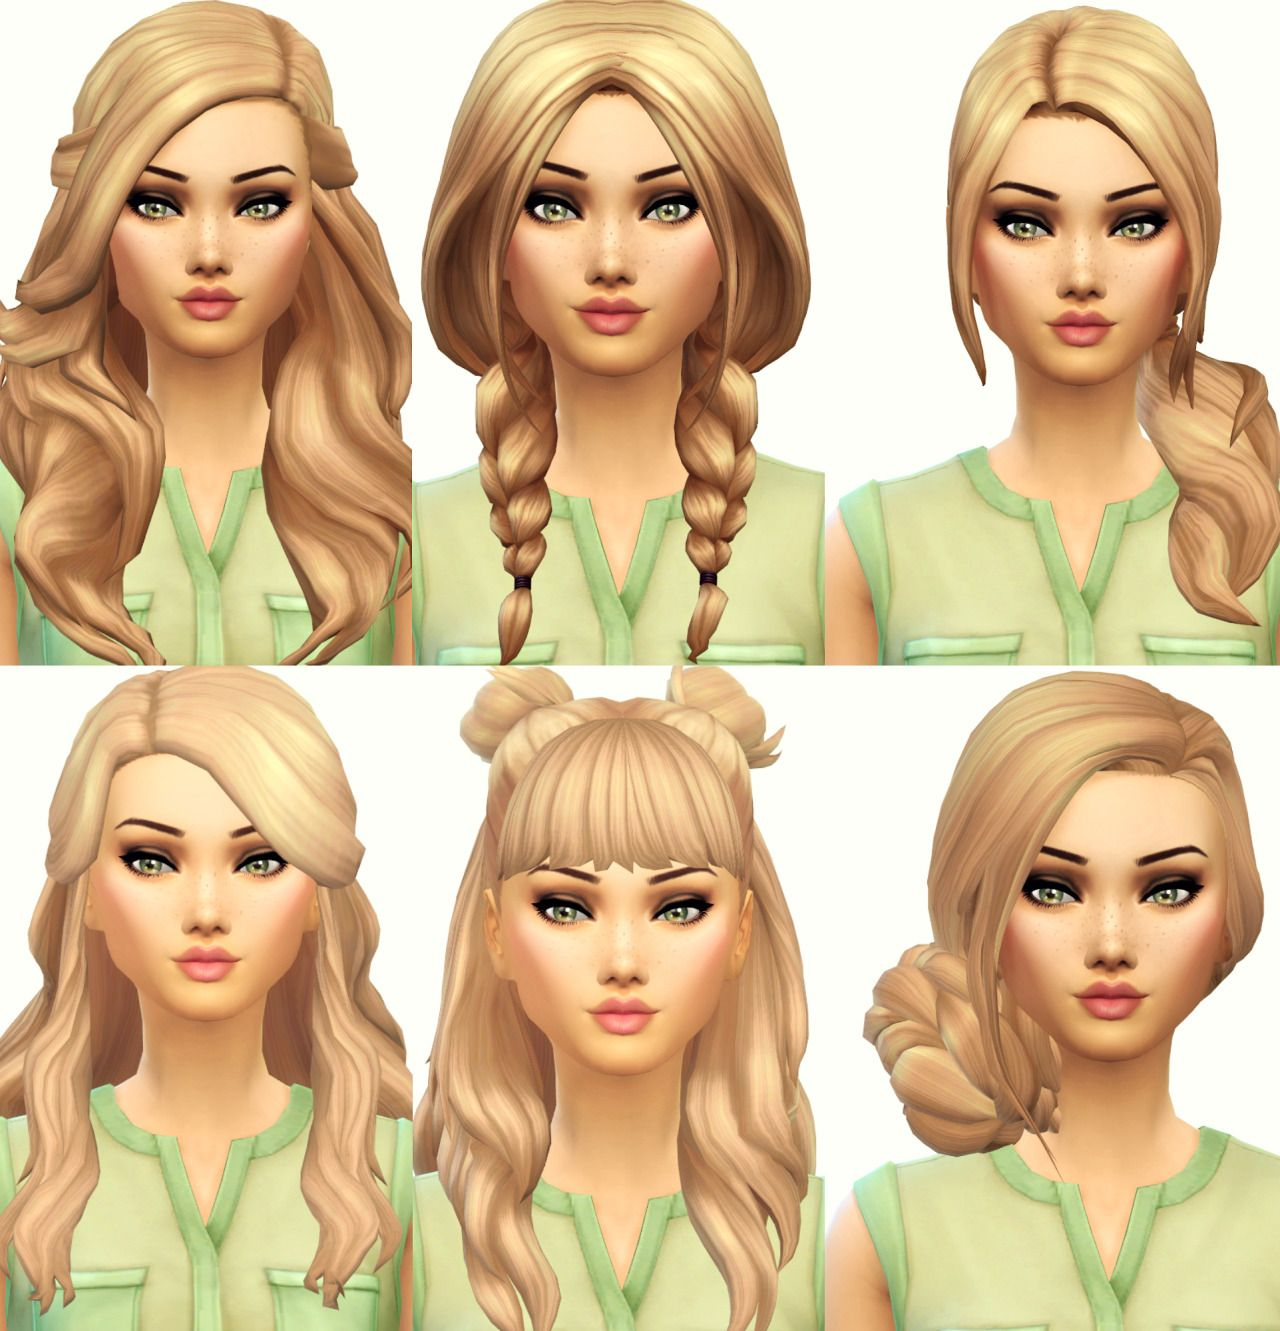 isleroux sims — current favourite maxis match hair (from left to